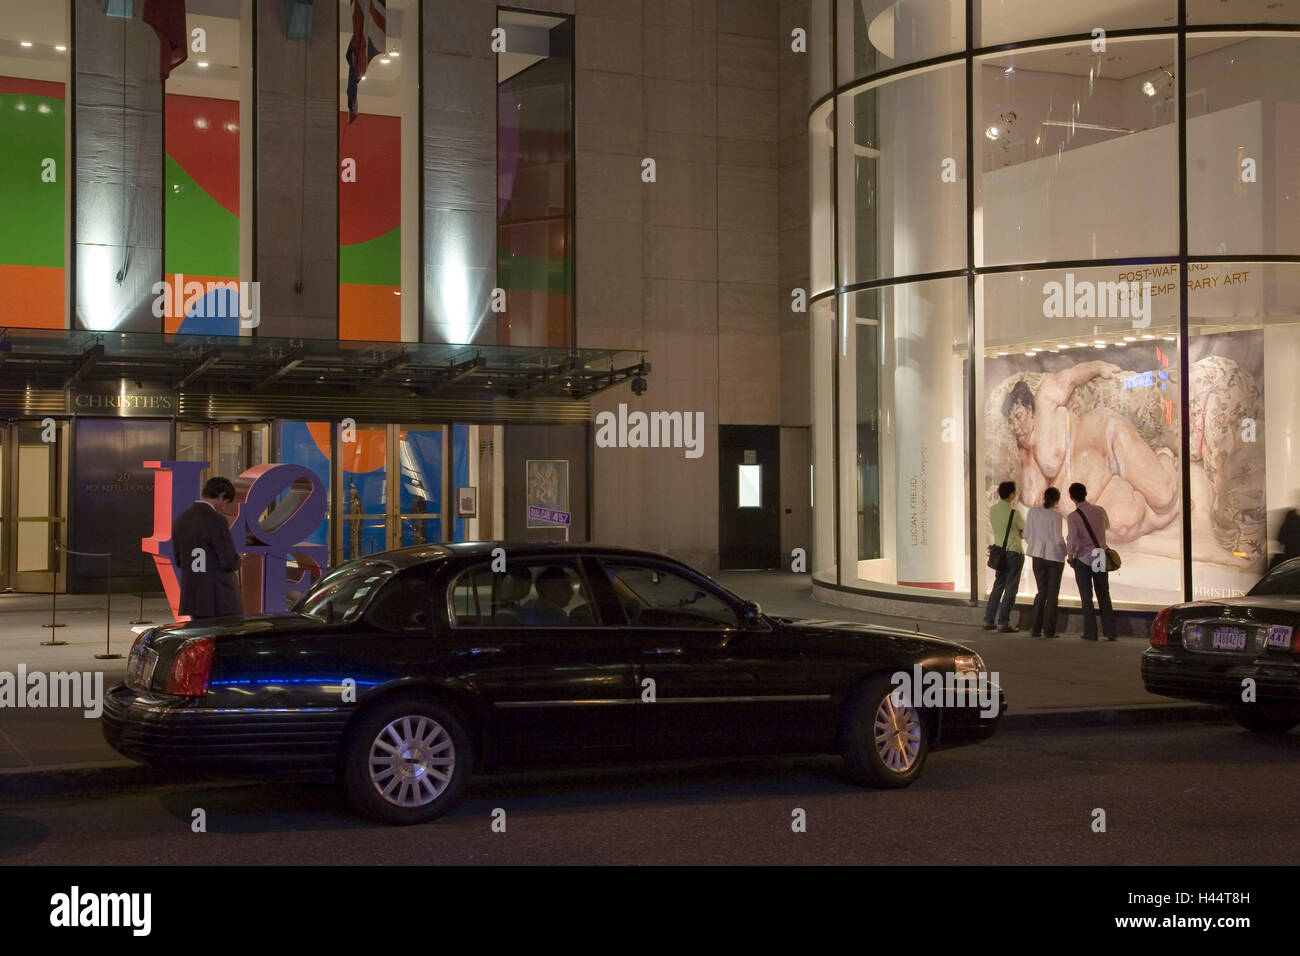 The USA, New York city, Christie's Gallery, outside, tourists, North America, town, Midtown, gallery, art, painting, - Stock Image